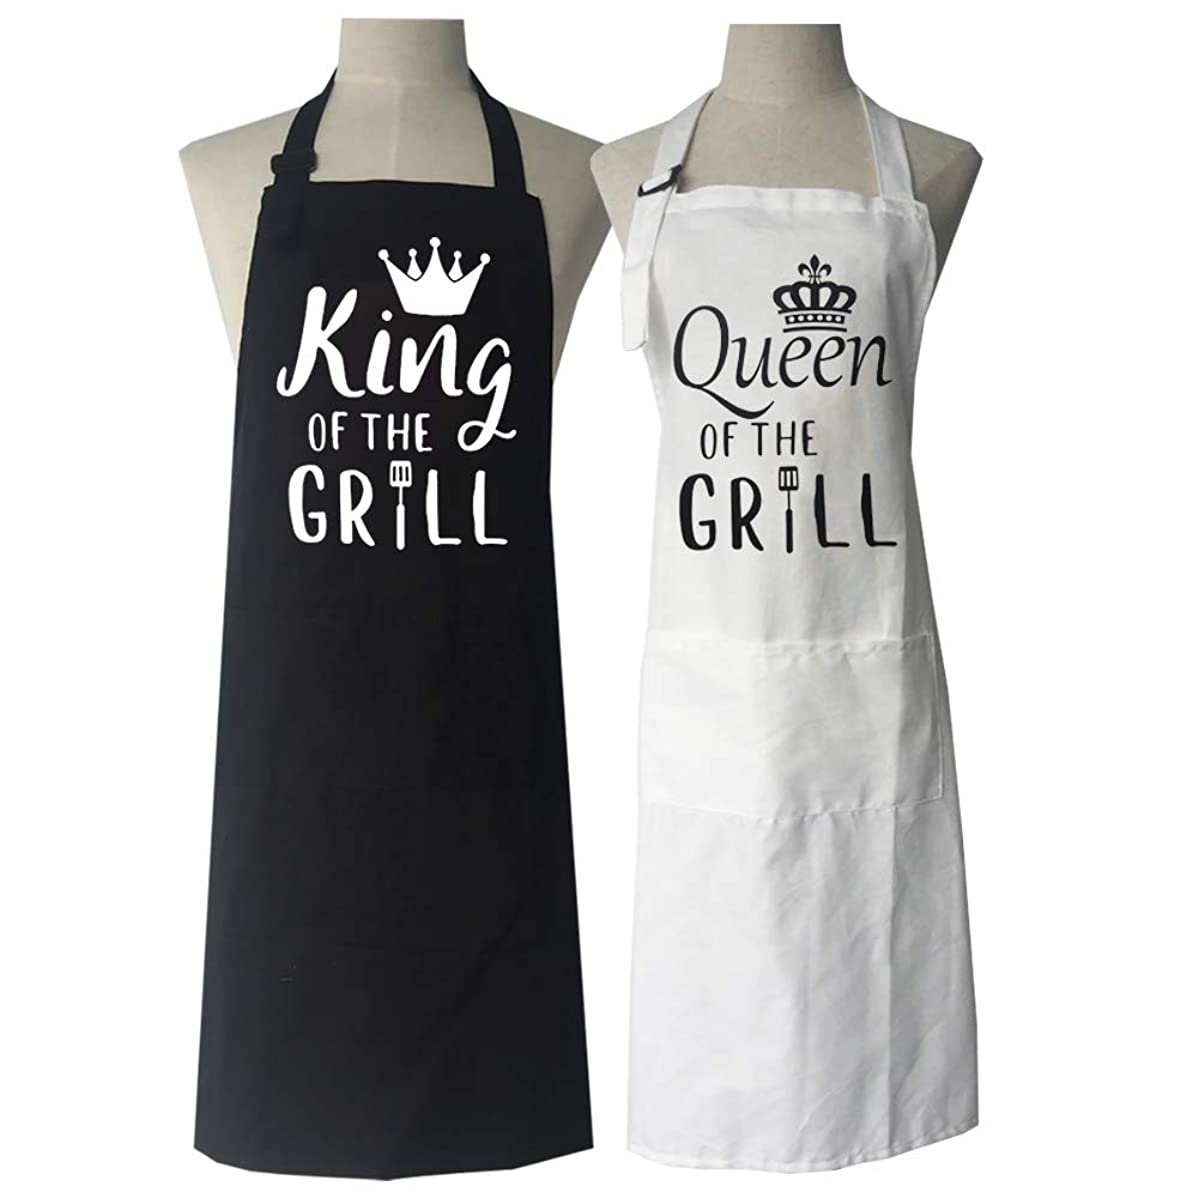 DAMOR His and Hers Gifts for Newlyweds Engagement Wedding Anniversary Bridal Shower,Couples Aprons,King and Queen of The Grill Apron,Couple Aprons,Funny Cooking Bibs